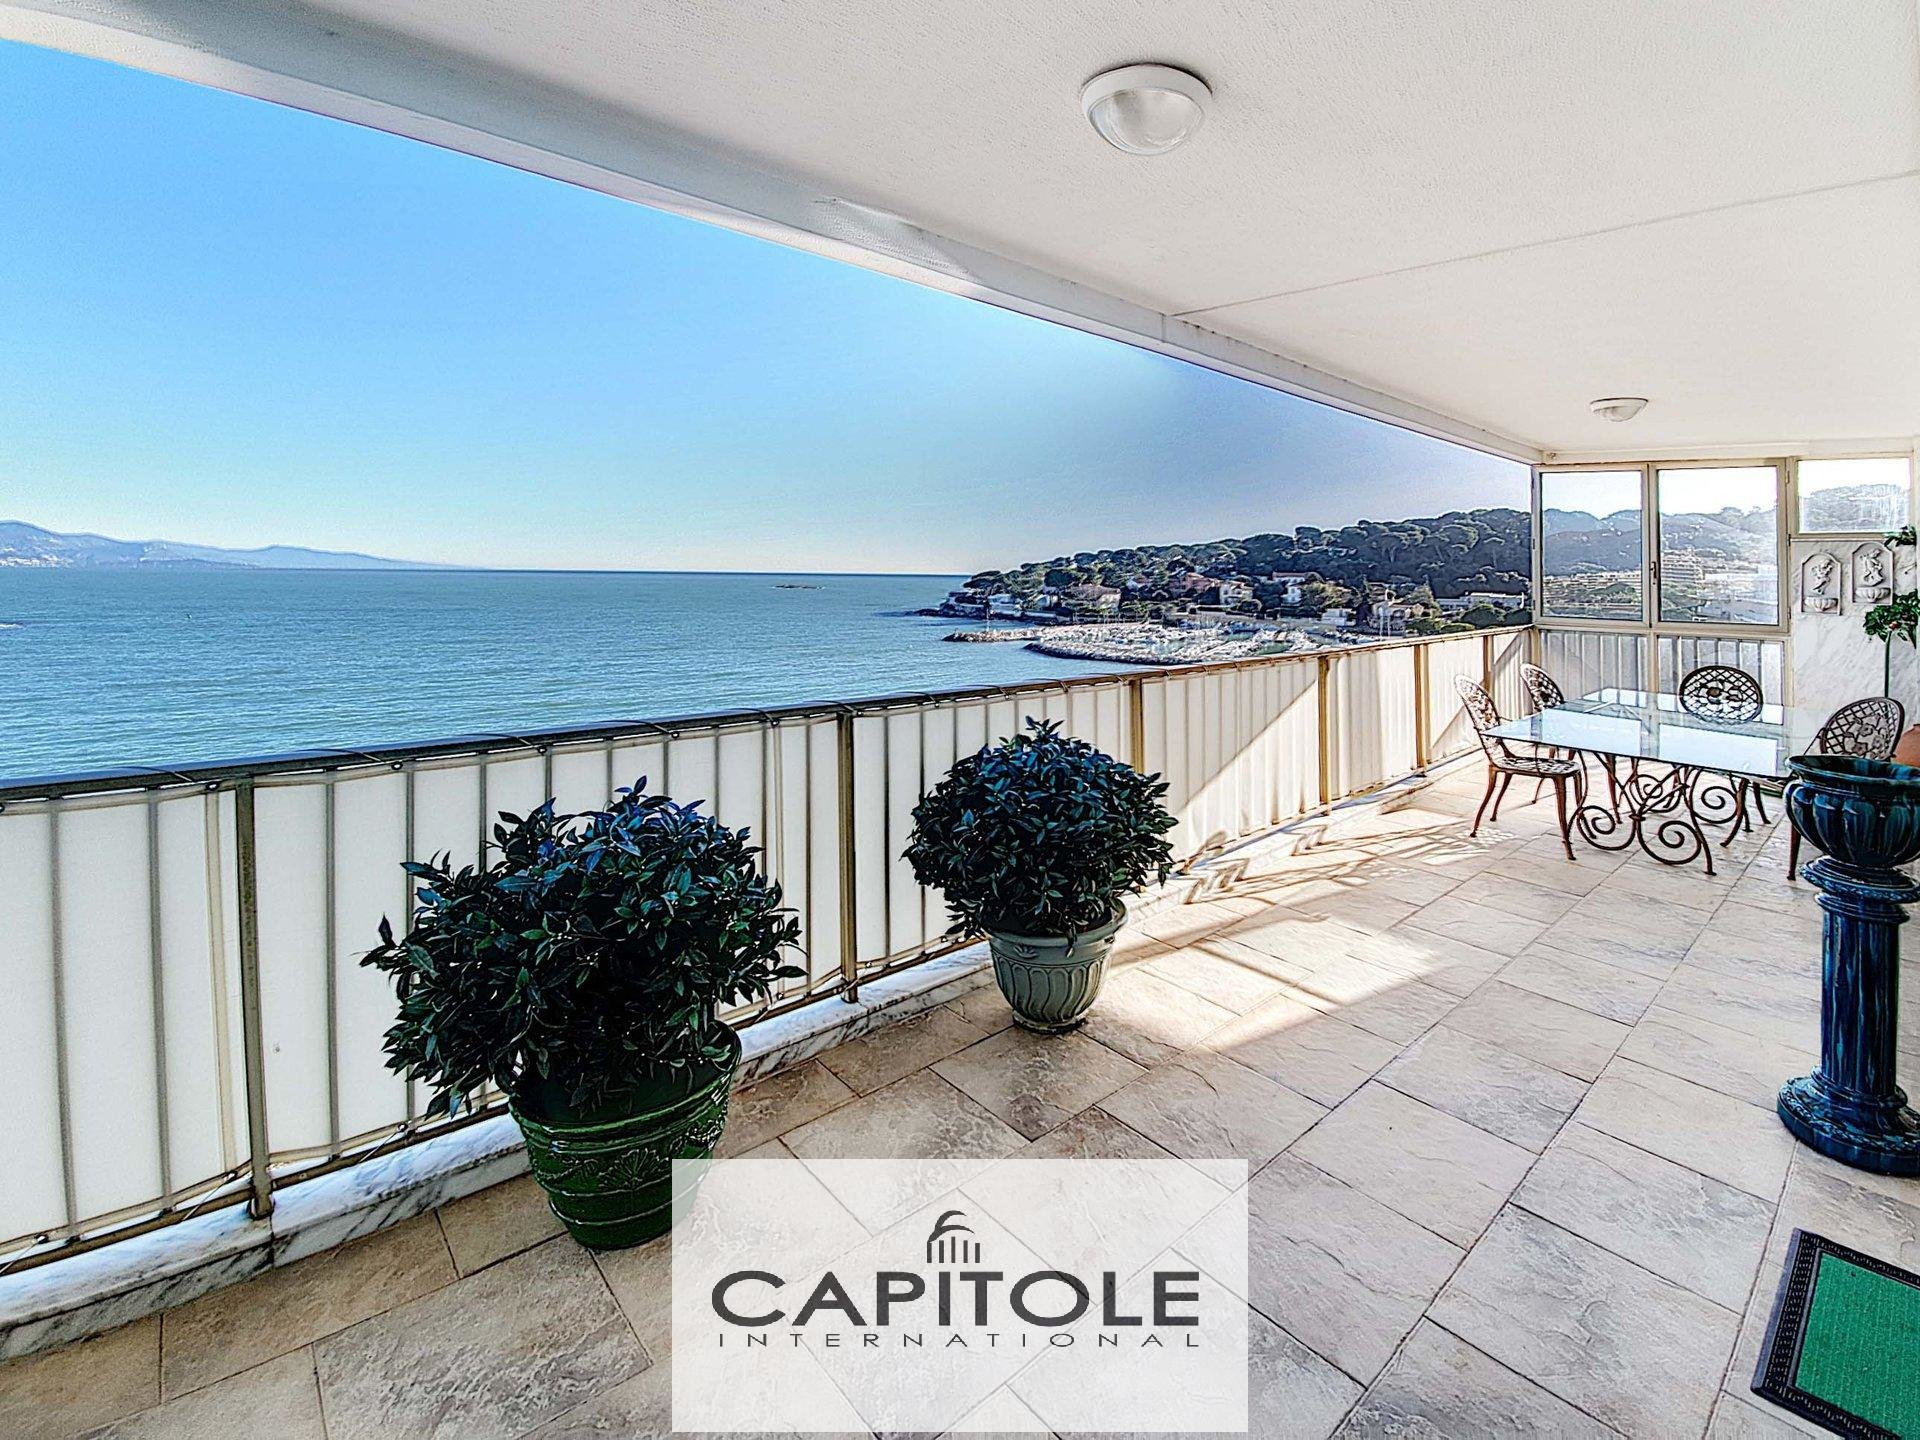 For sale, borderline Cap d'Antibes/ panoramic sea view 191 m² penthouse, garages